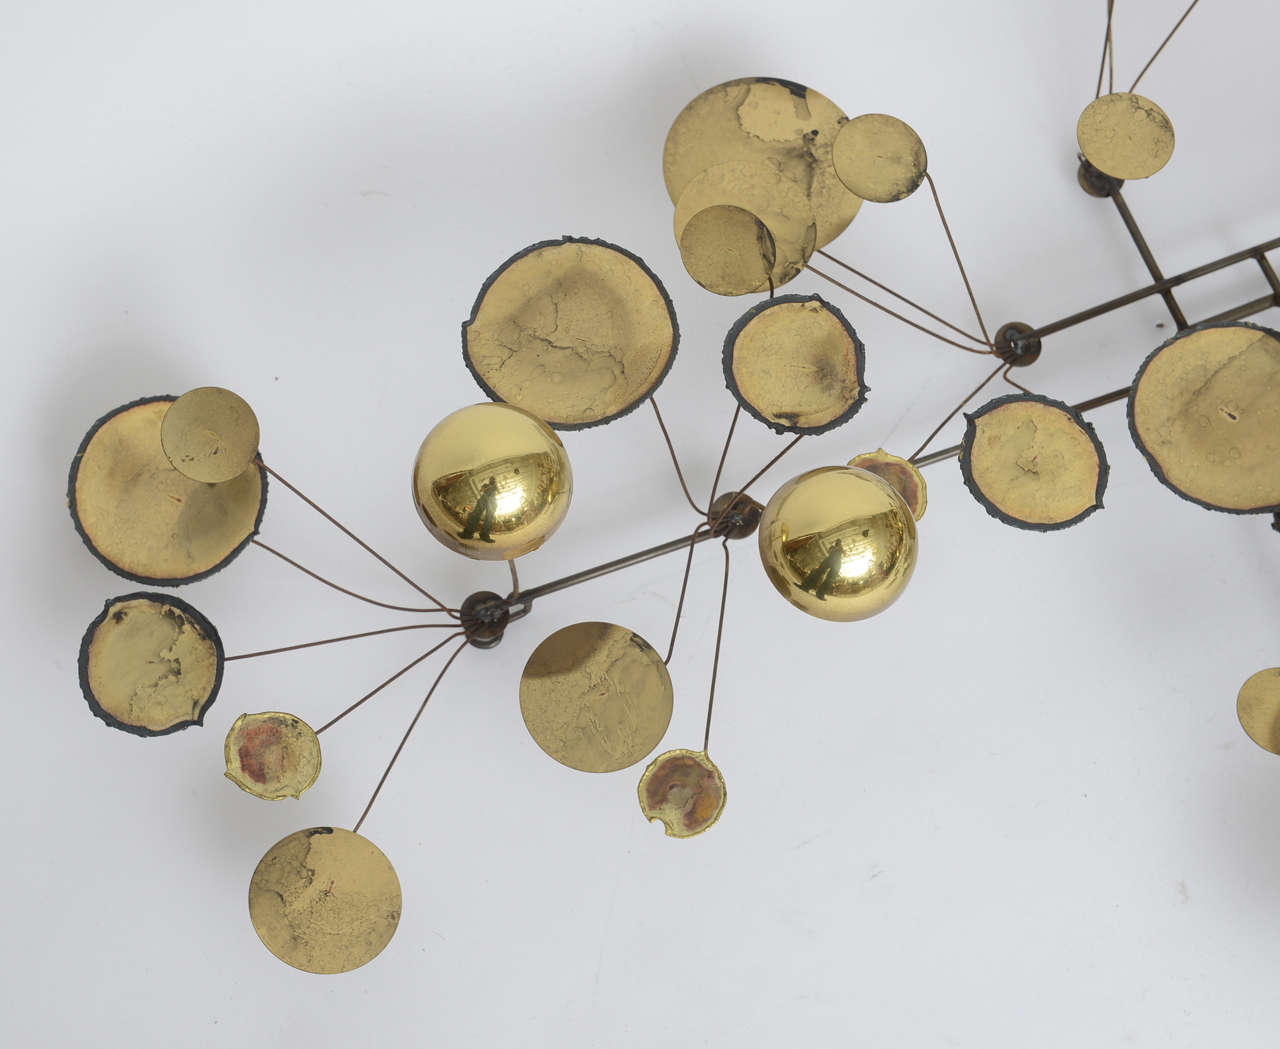 Mid Century Modern Brass Raindrops Wall Sculpture By C. Jere, Manufactured  By Artisan